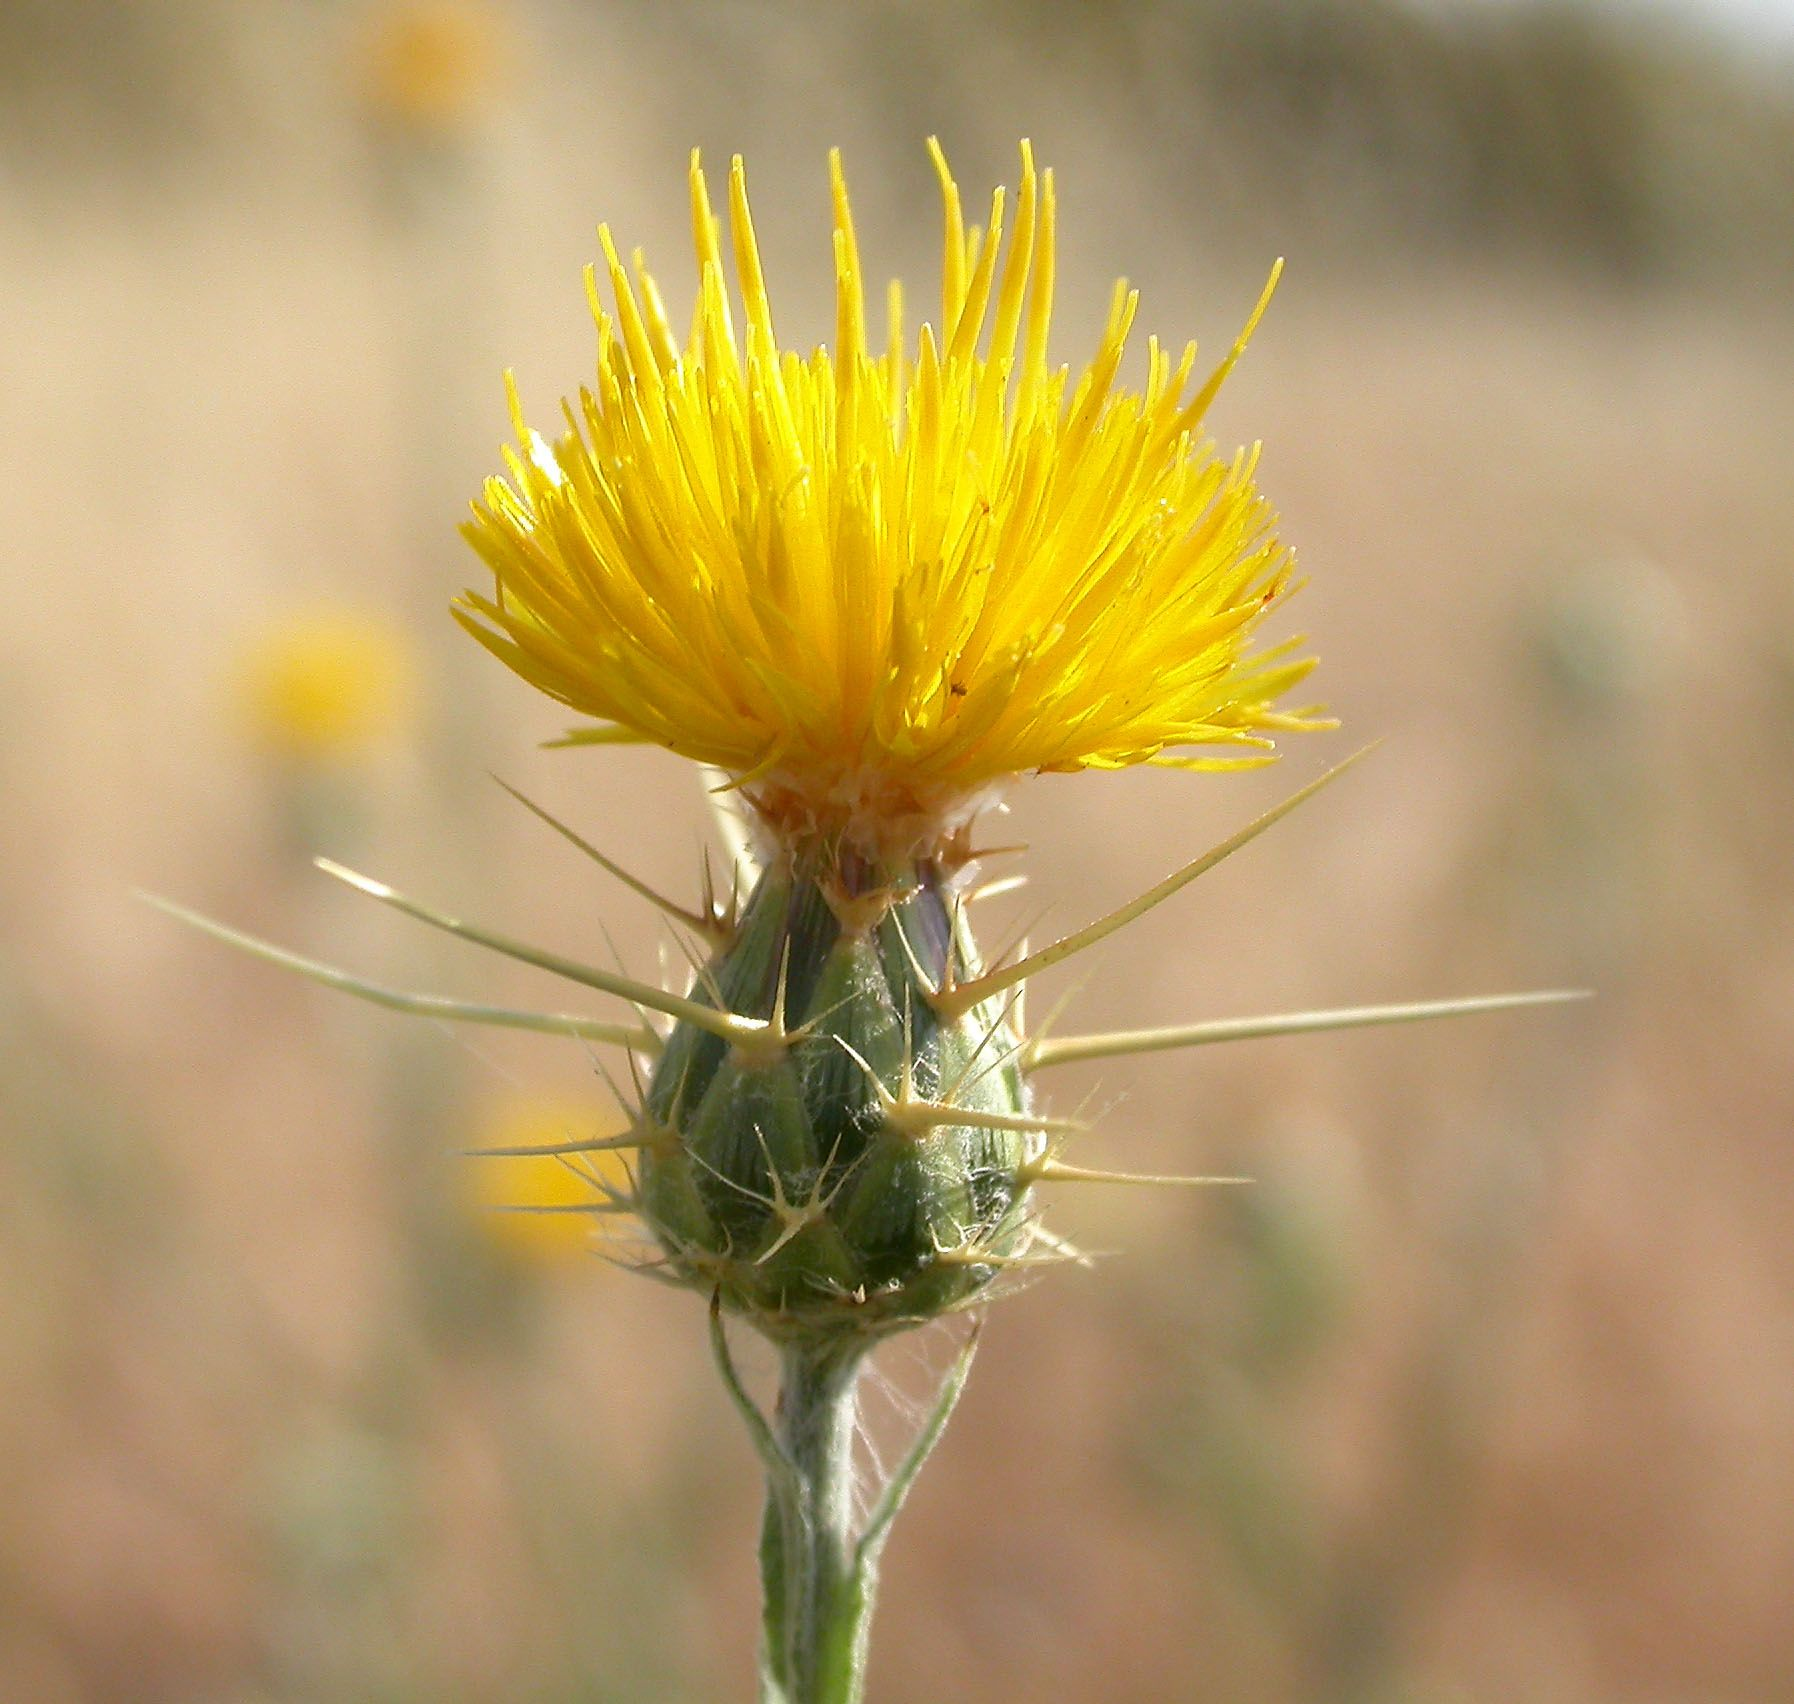 Pin By Ohitekah On Thistle Pinterest Plants Flowers And